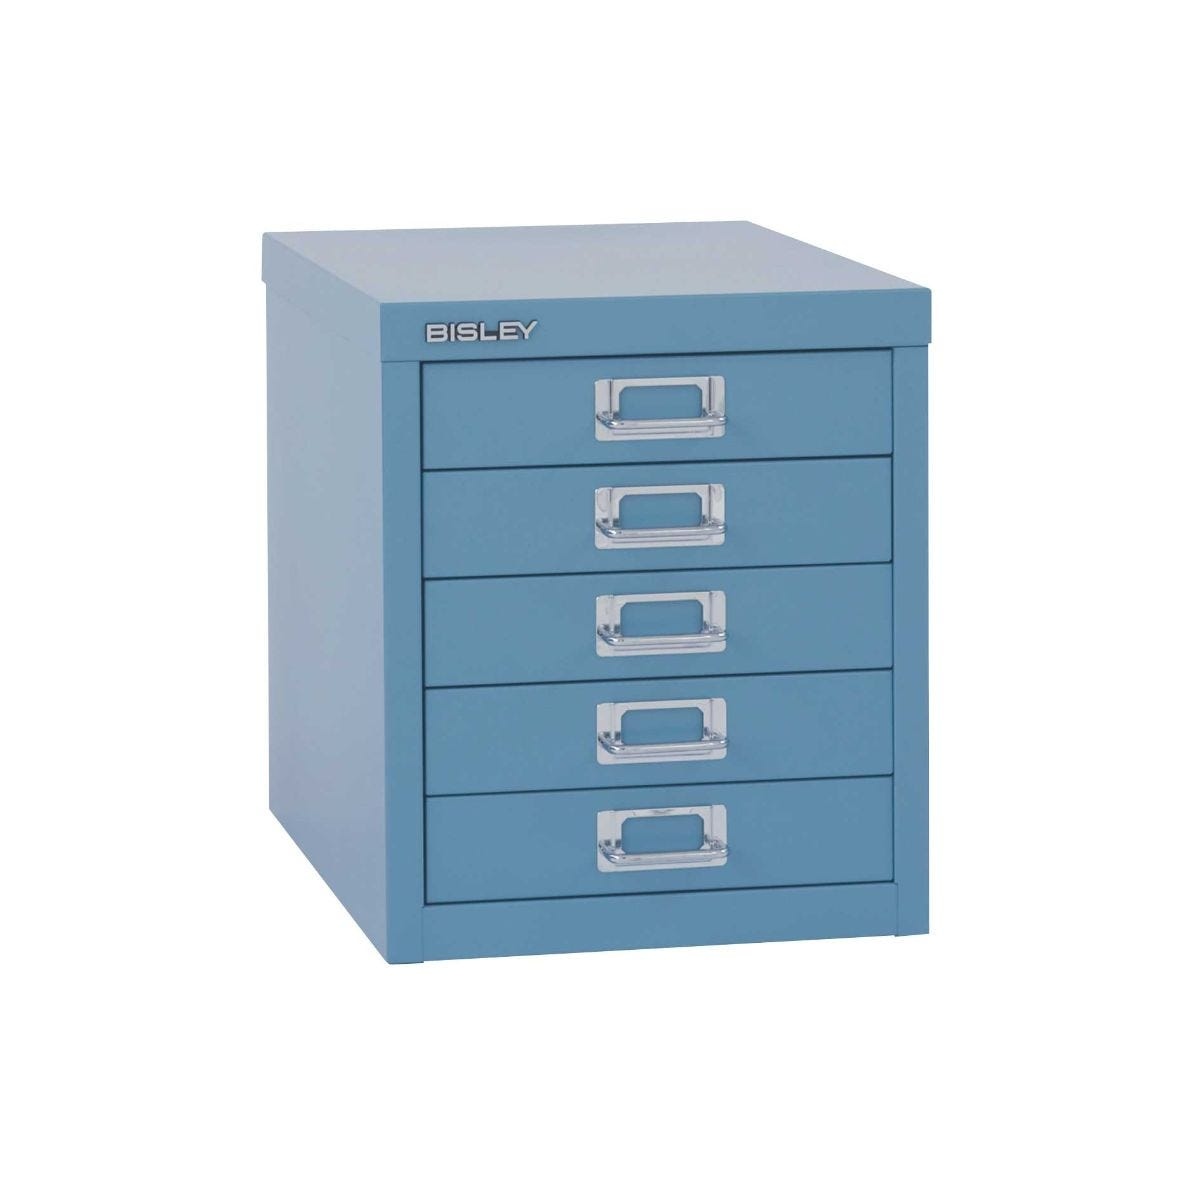 Green Filing Cabinets Storage U0026 Shelving Furniture U0026 Storage   Ryman